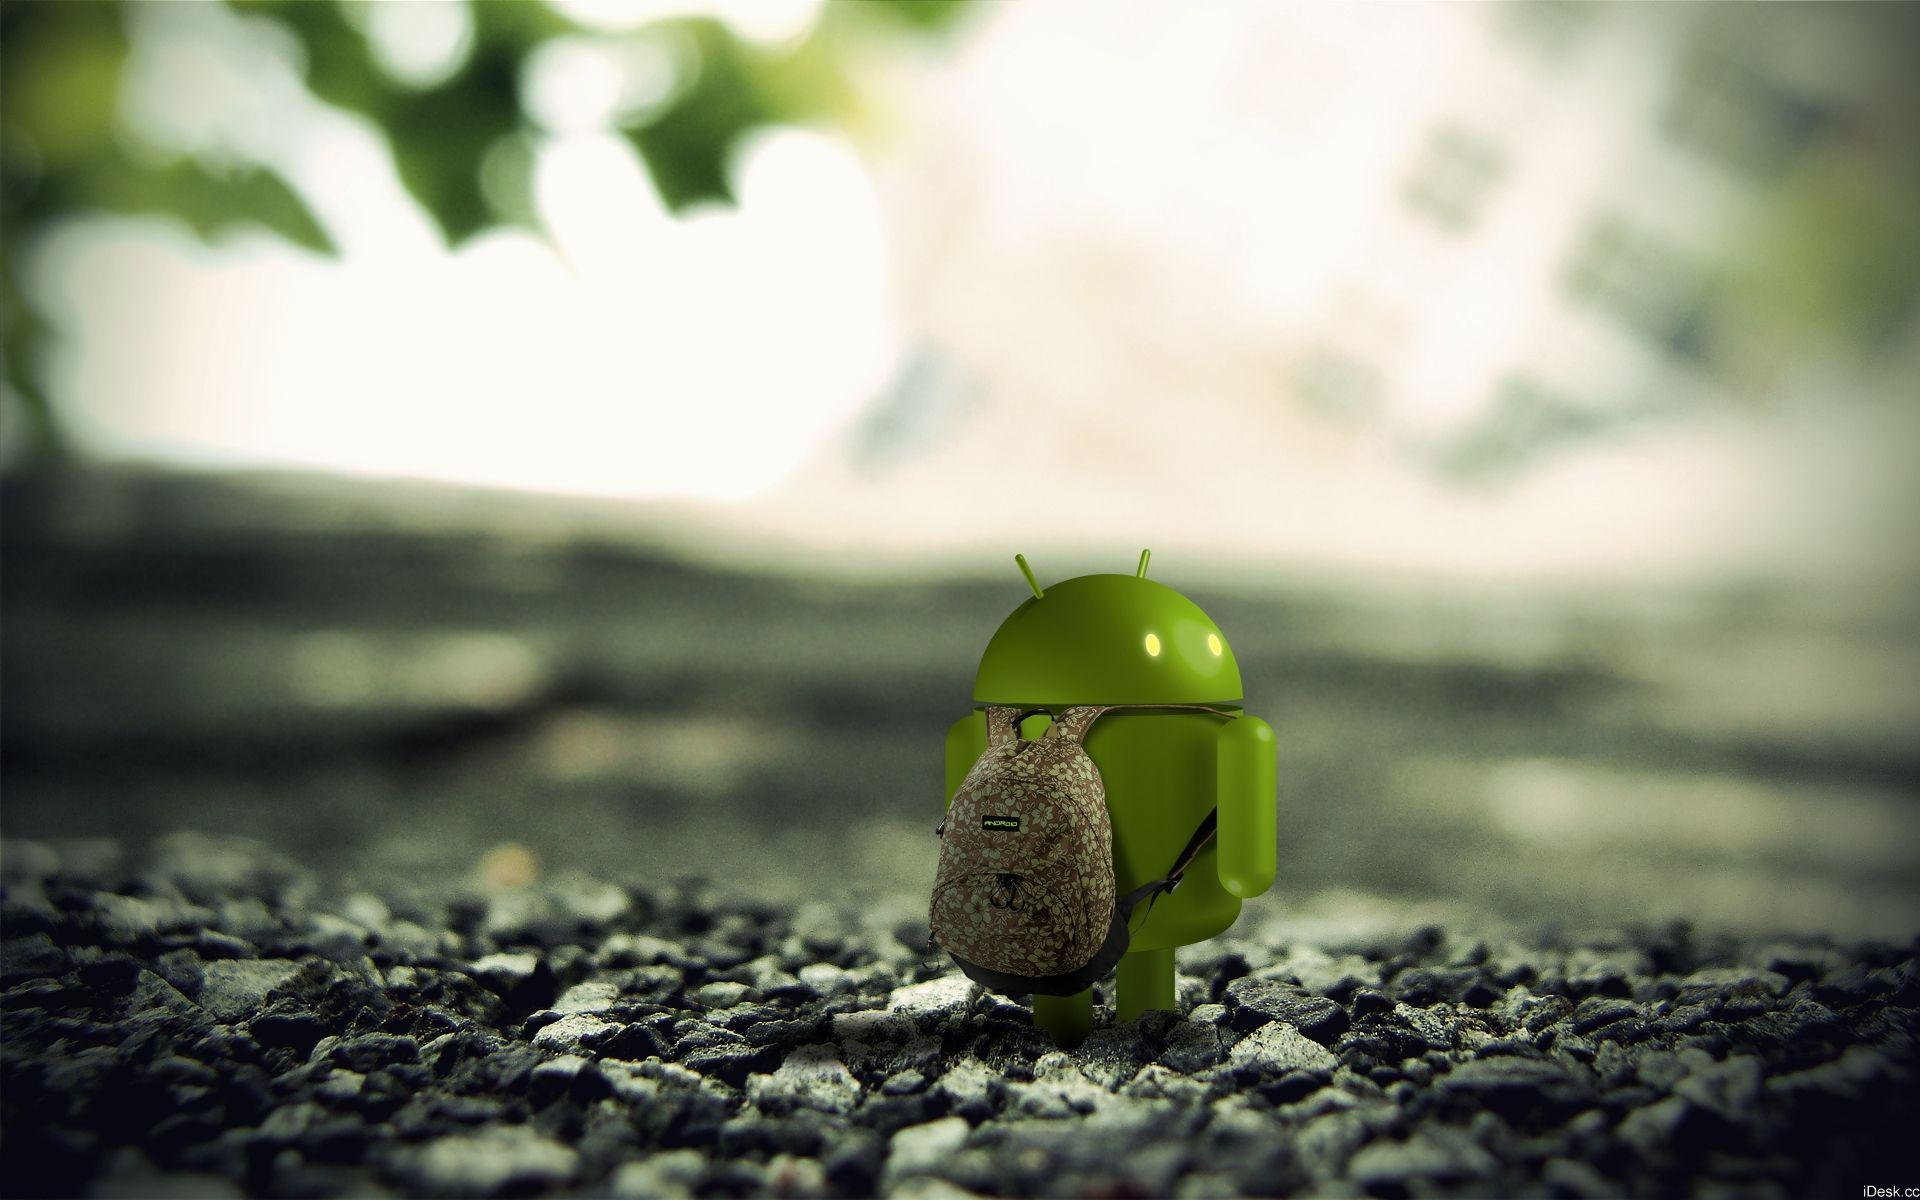 apple vs android full hd wallpaper 2014 30258 wallpaper walltoday